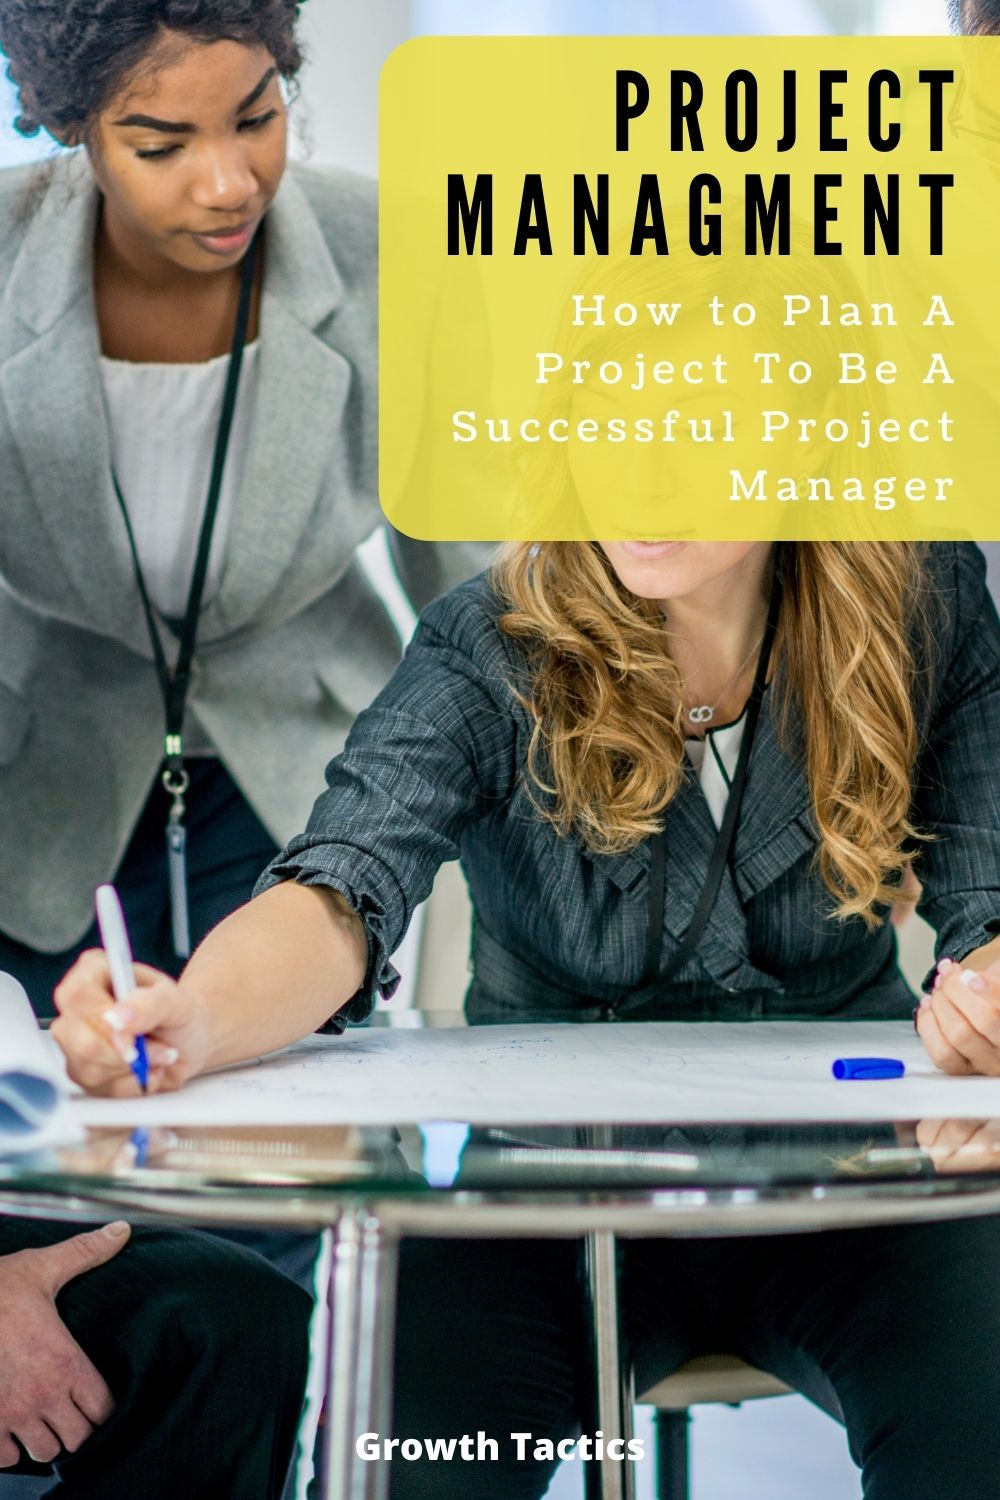 How to Plan A Project To Be A Successful Project Manager